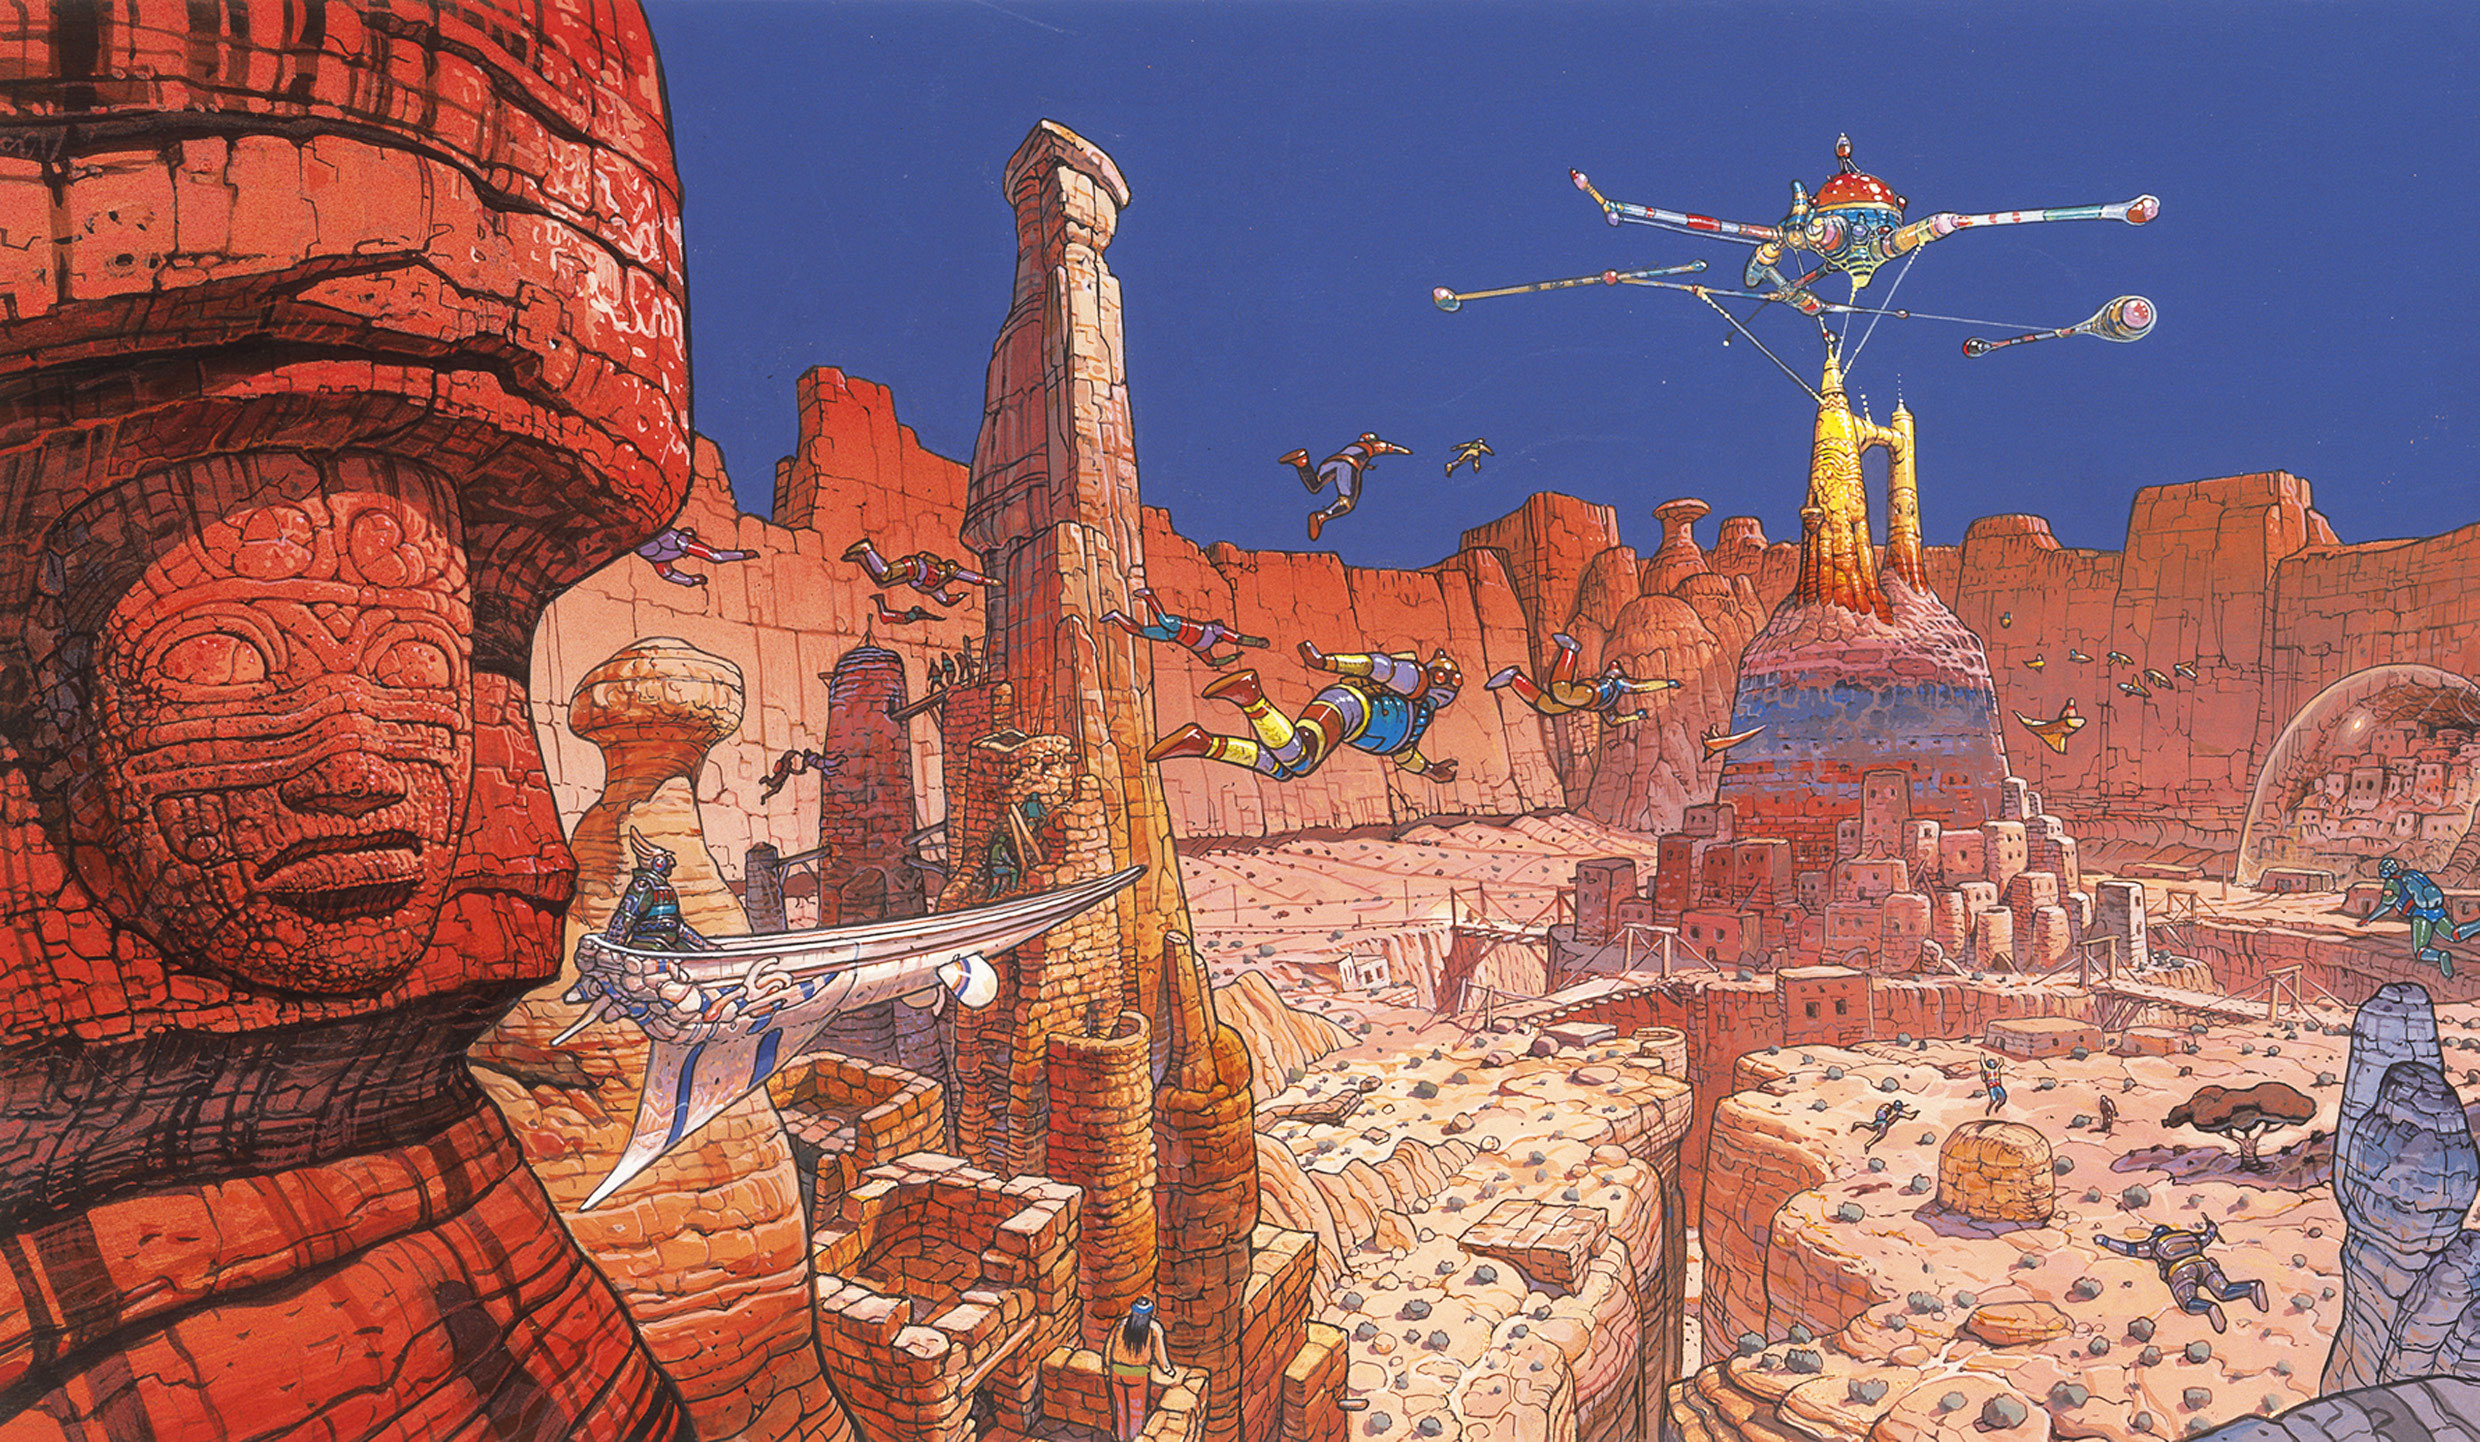 Moebius - Metreon